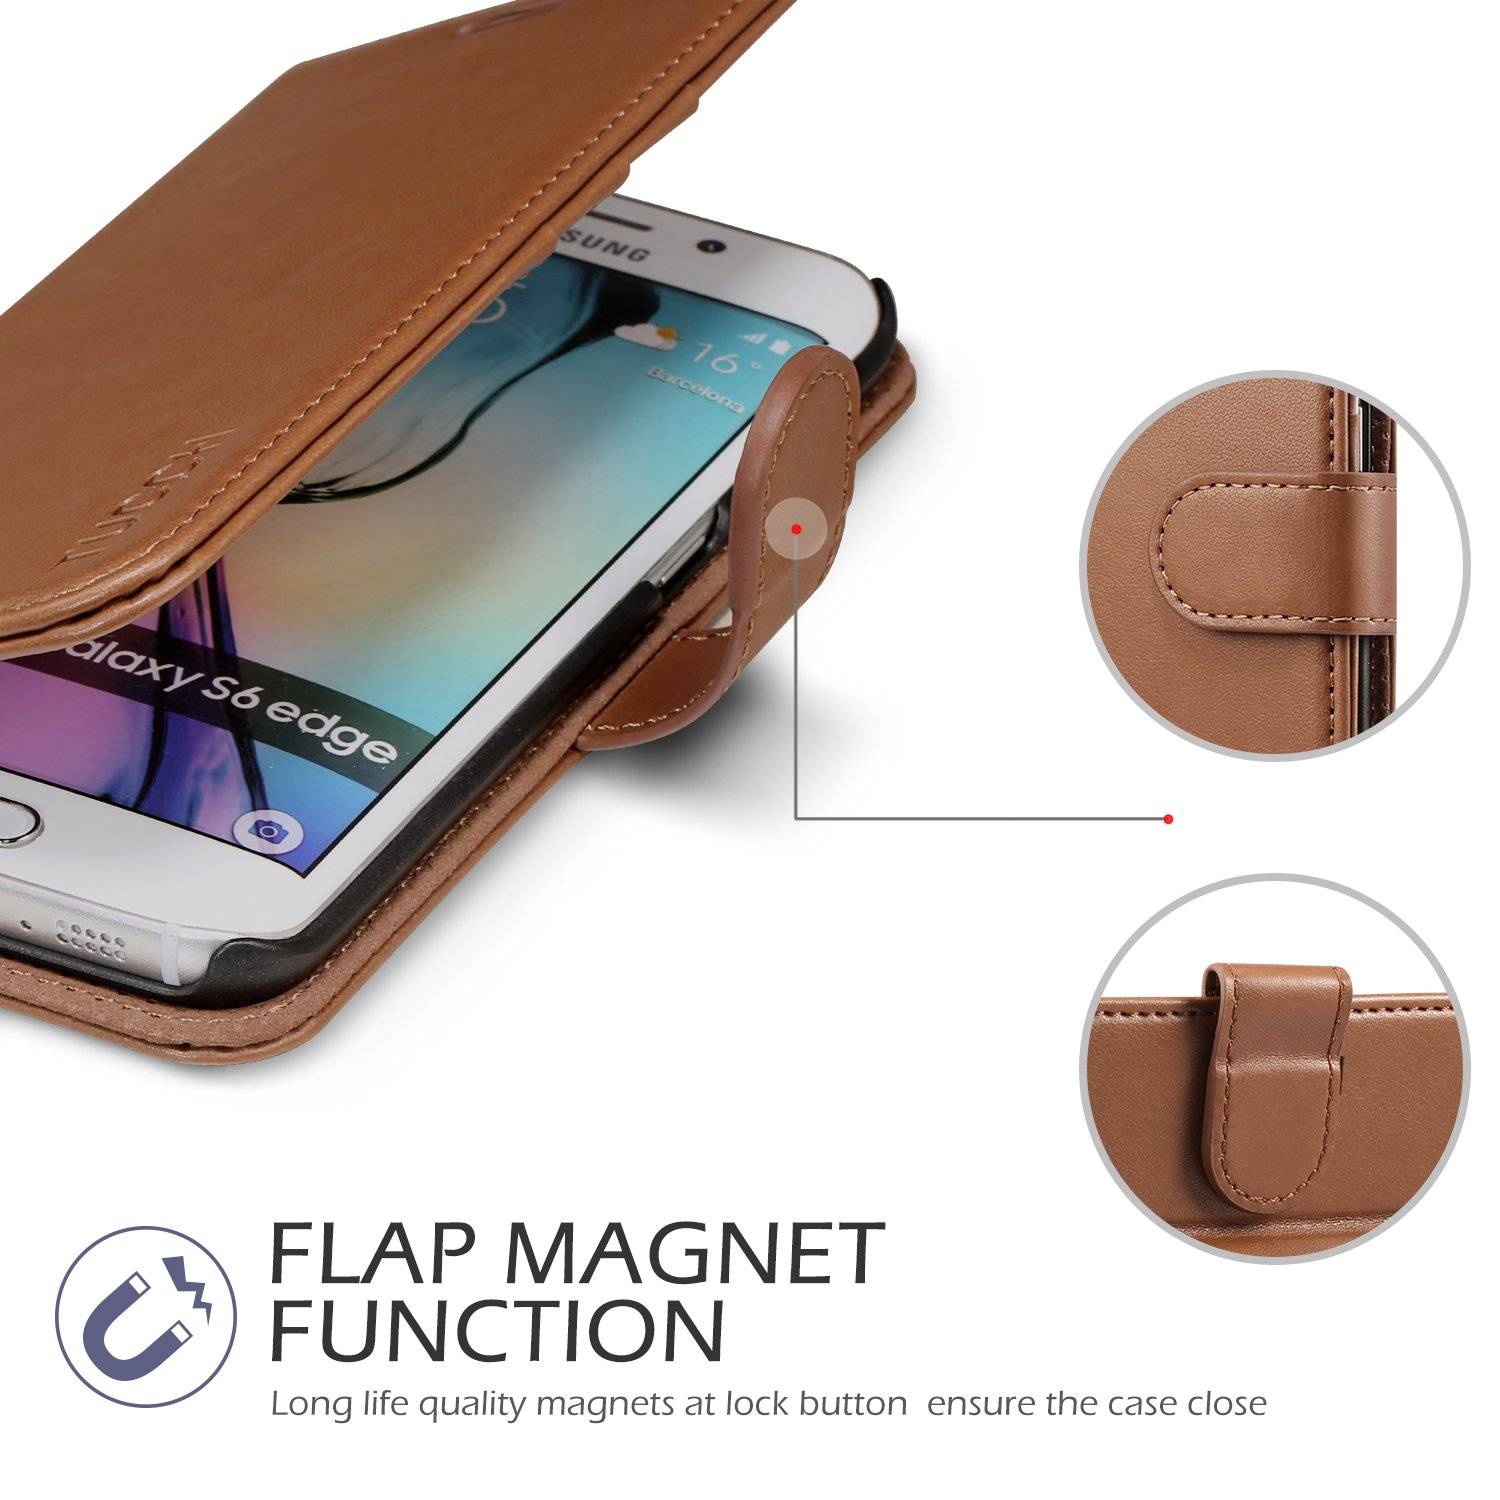 Magnetic Clasp Credit Card Slots Book Style Case with Stand Feature Black Money Pocket TUCCH Galaxy S6 Edge Case Leather Wallet Case Compatible with Galaxy S6 Edge